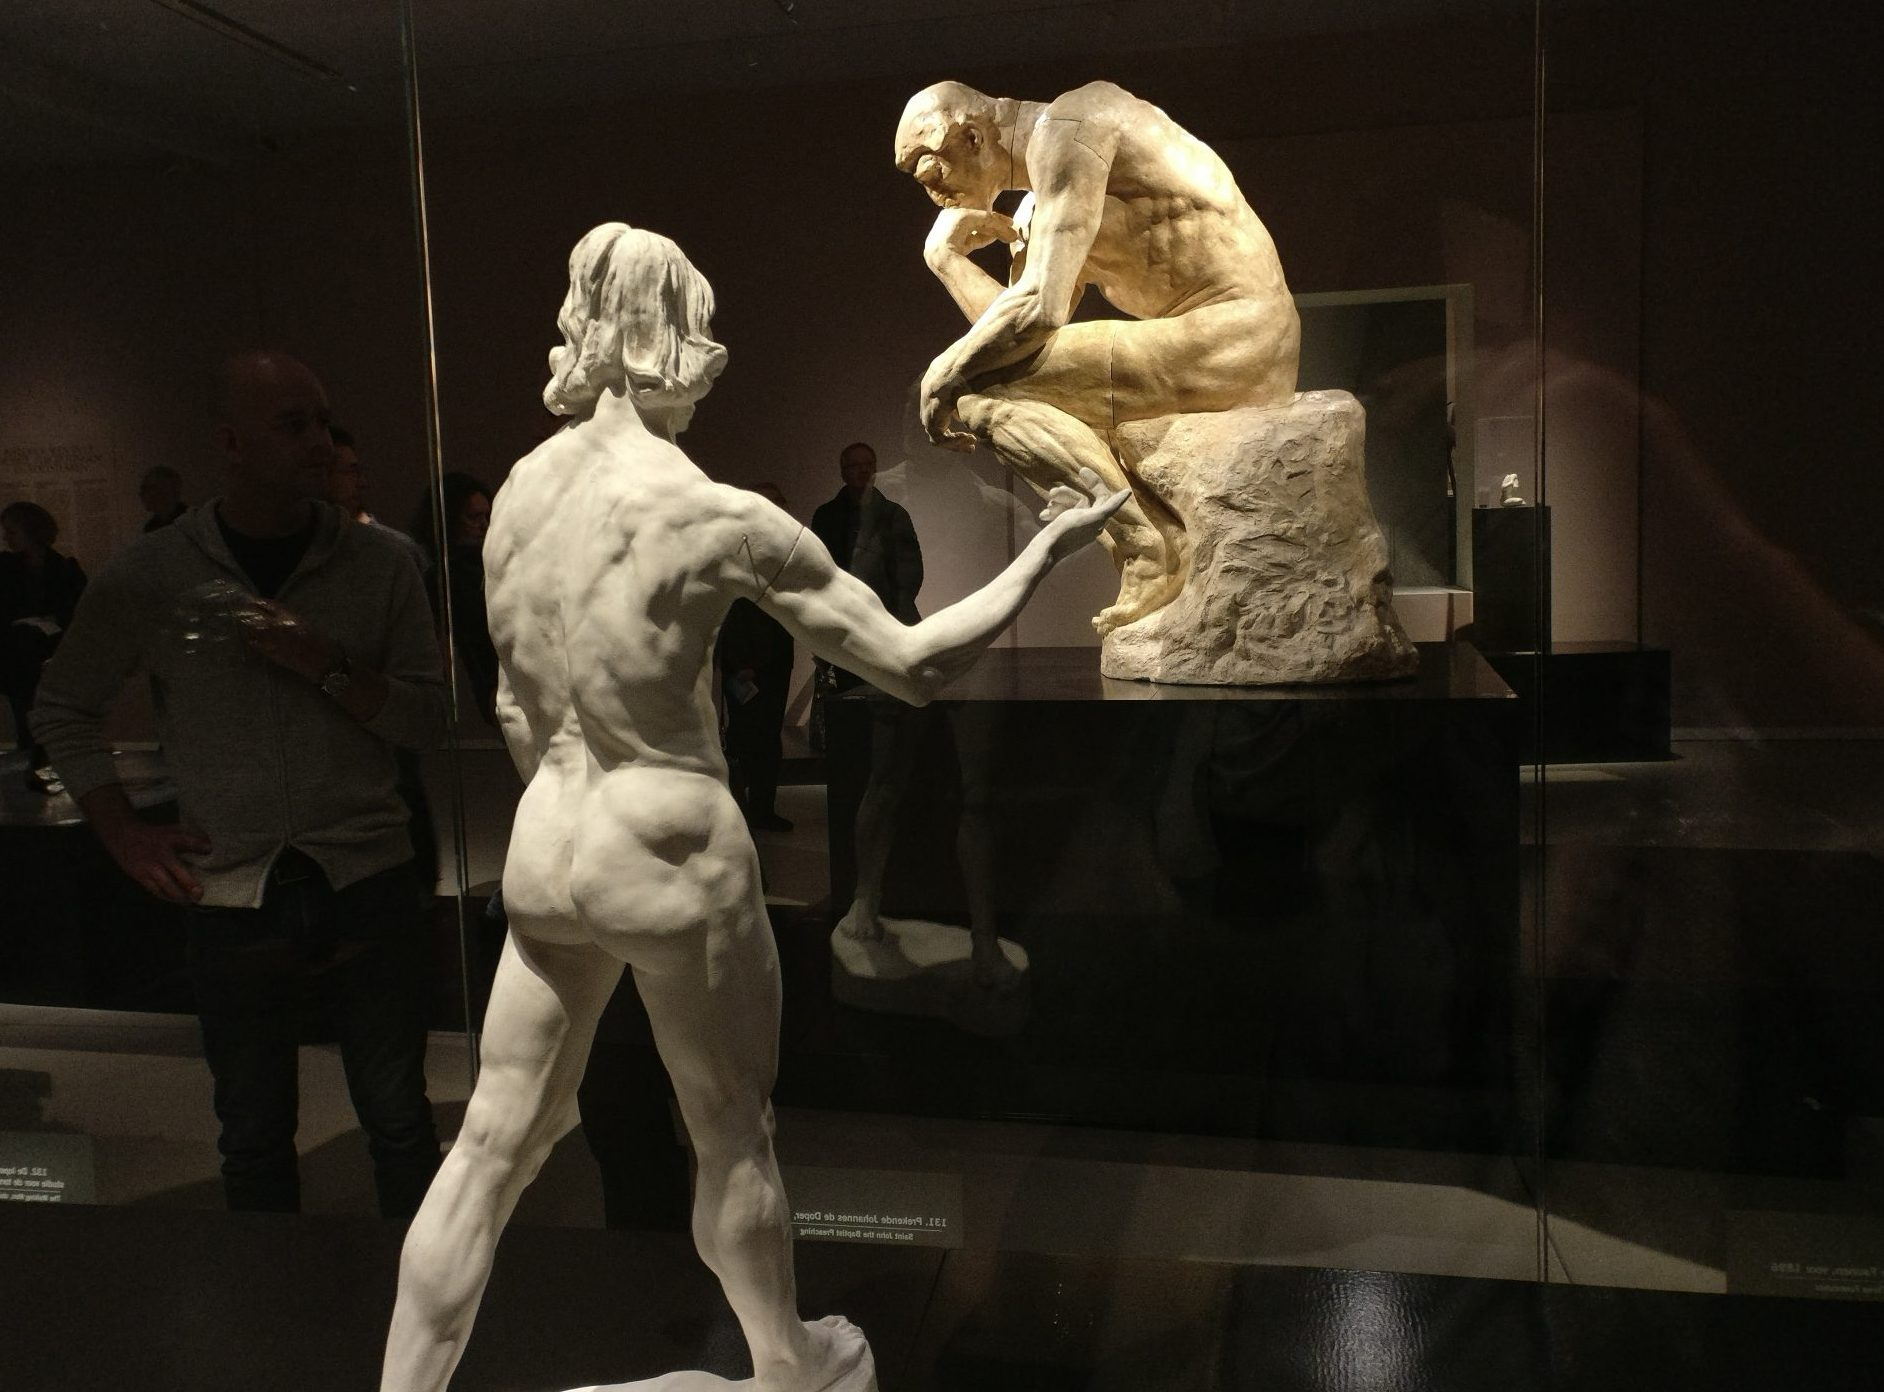 Two Rodin works: In the foreground, a small plaster cast of St. John the Baptist Preaching (1878). In the background, a large statue of The Thinker in patinated plaster from 2903.